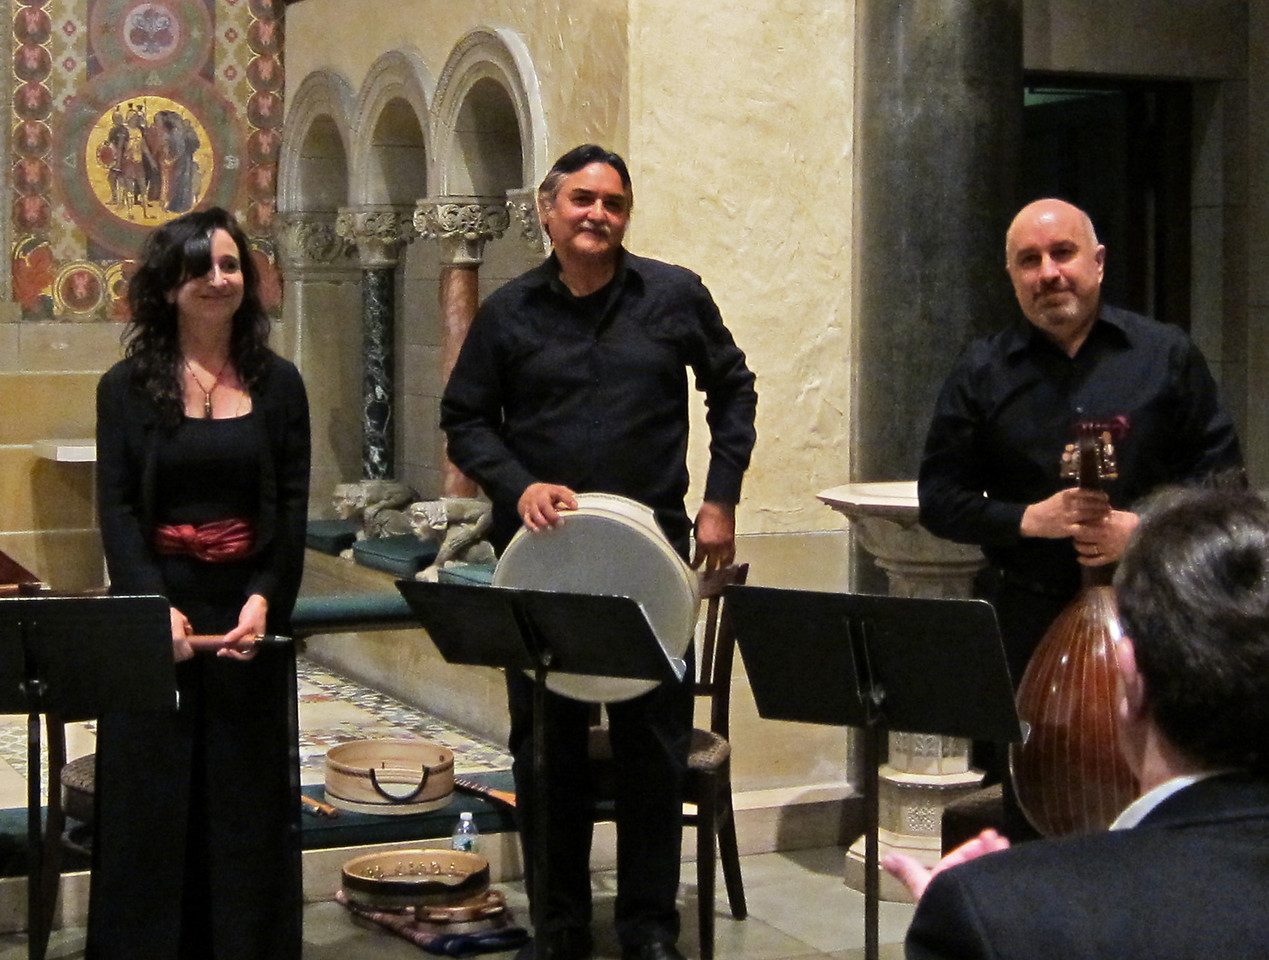 Rose of the Compass musicians Nina Stern, recorders; Glen Velez, percussion; Ara Dinkjian, oud, joined Salon/Sanctuary artists Jessica Gould, soprano; Daniel Swenberg, theorbo; Bradley Brookshire, harpsichord, before a sold-out audience in the chapel of St Bart's in Manhattan at a Salon/Sanctuary concert on January 29, 2012. The afternoon's program comprised music of Venice from the 17th century, along with traditional and medieval music from Armenia, Bulgaria, Cyprus, Macedonia, and Turkey.